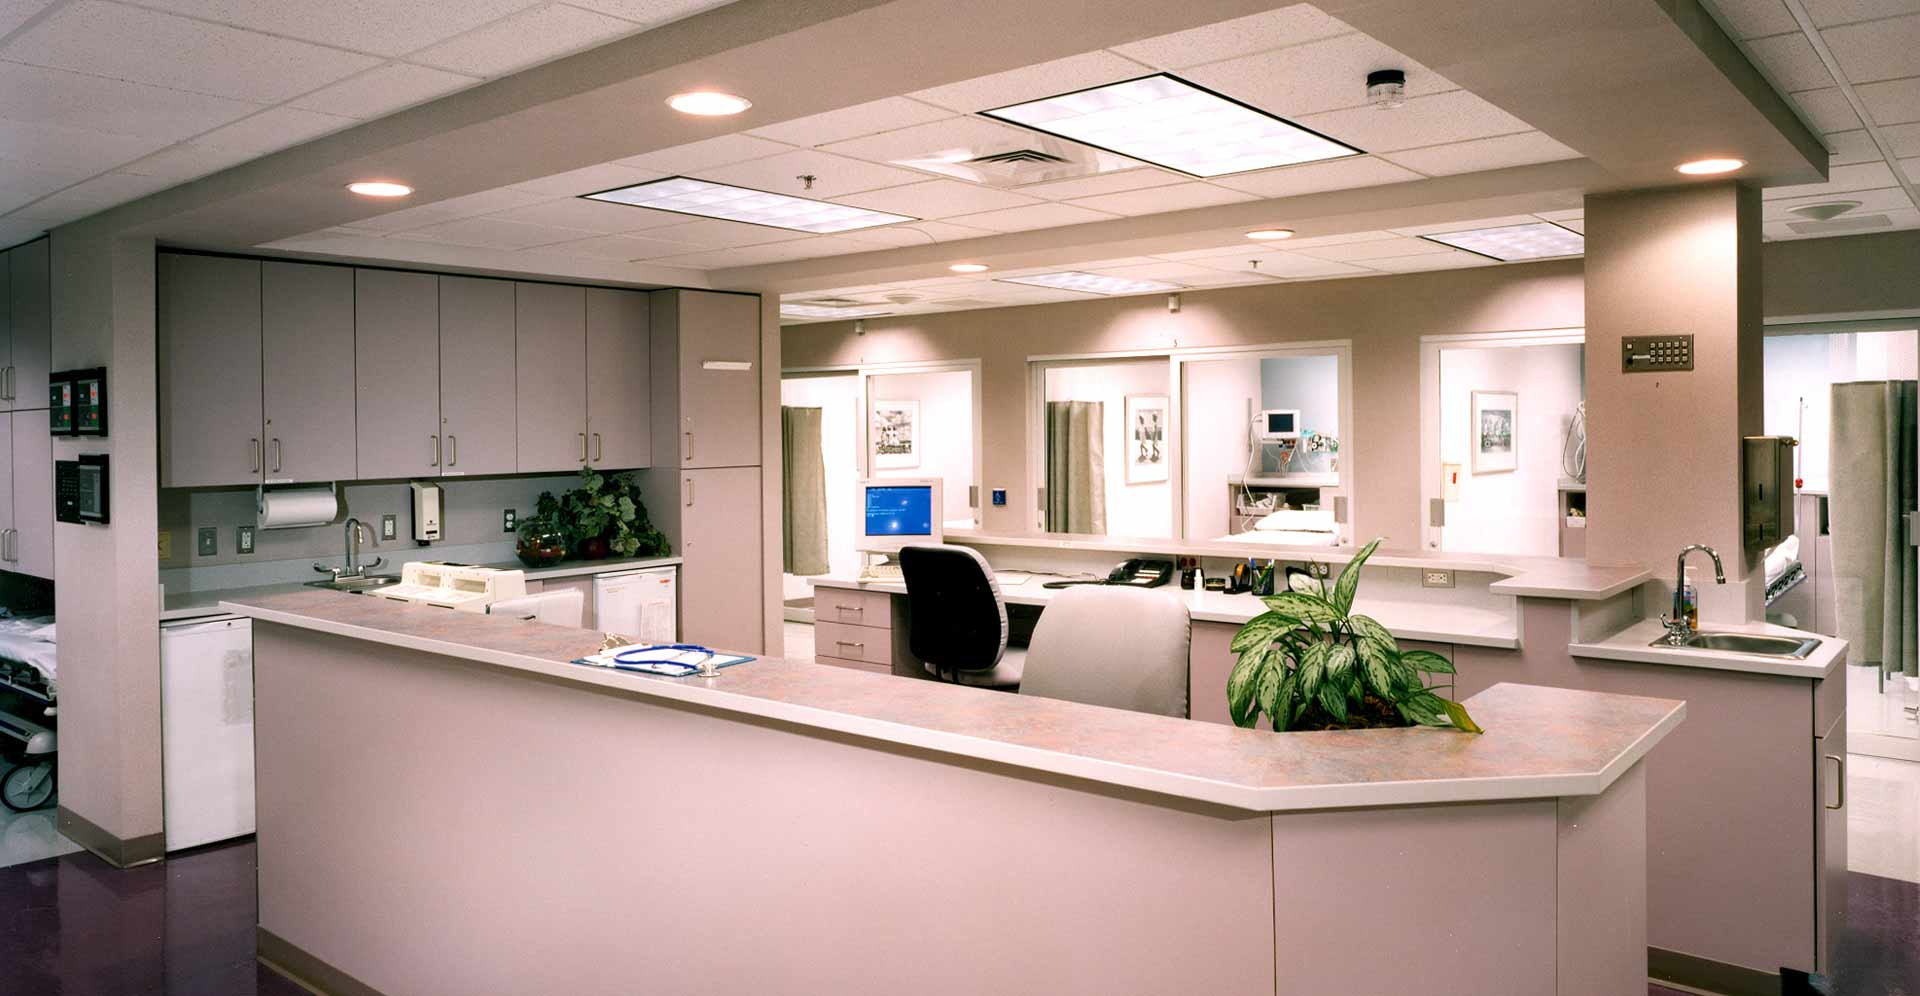 Gastroenterology Center